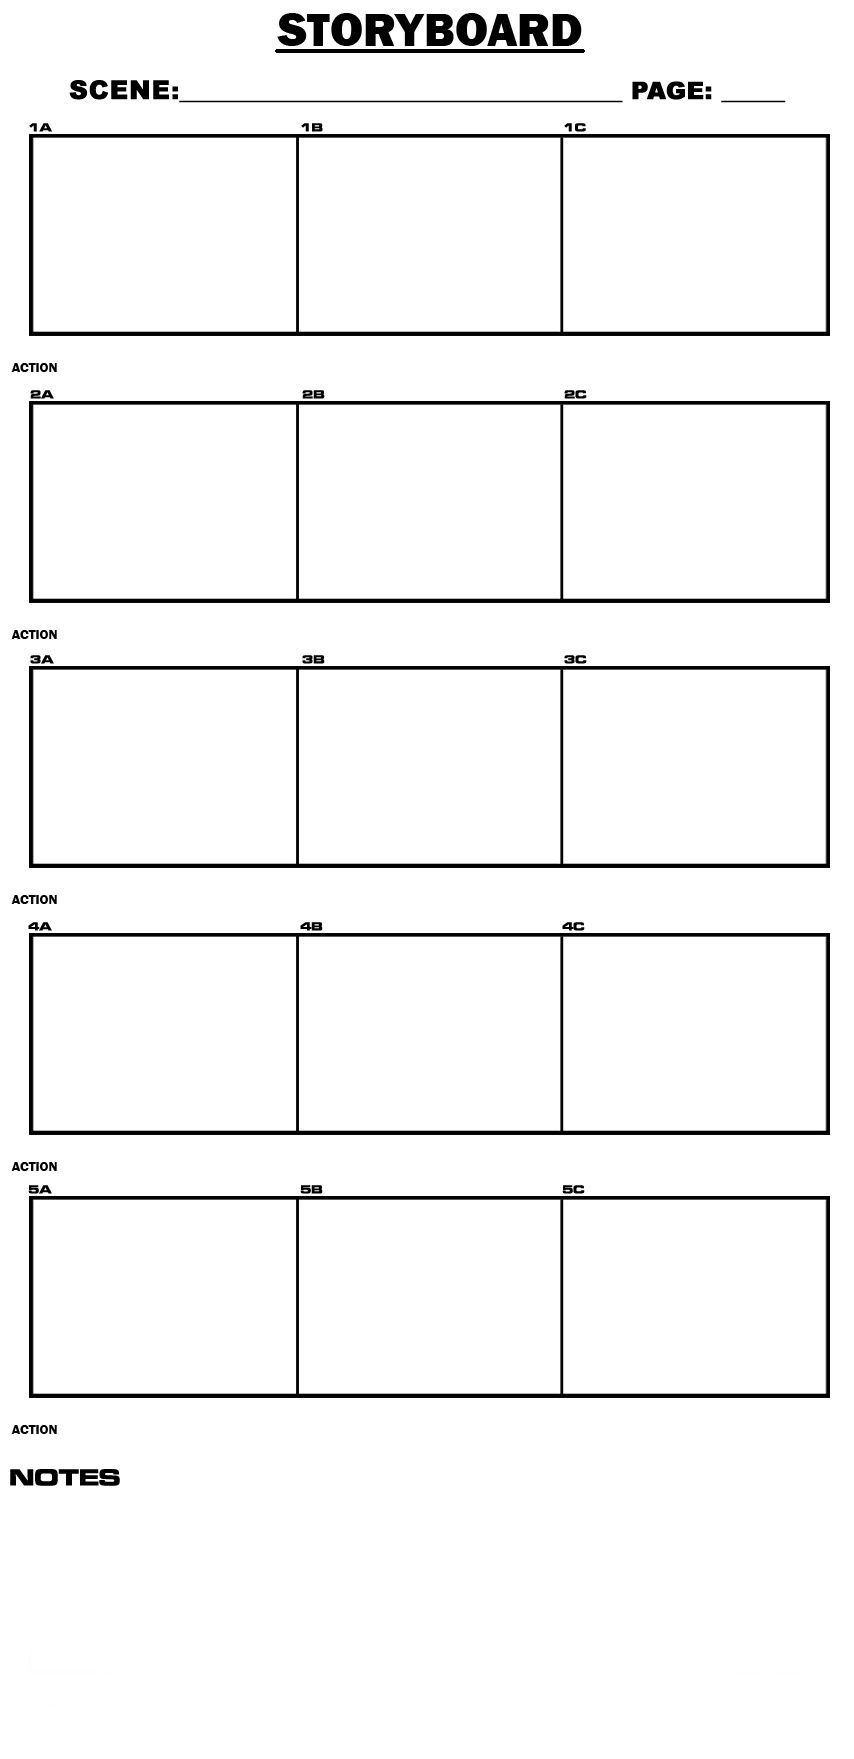 Storyboard Template By TemireeDeviantartCom On Deviantart